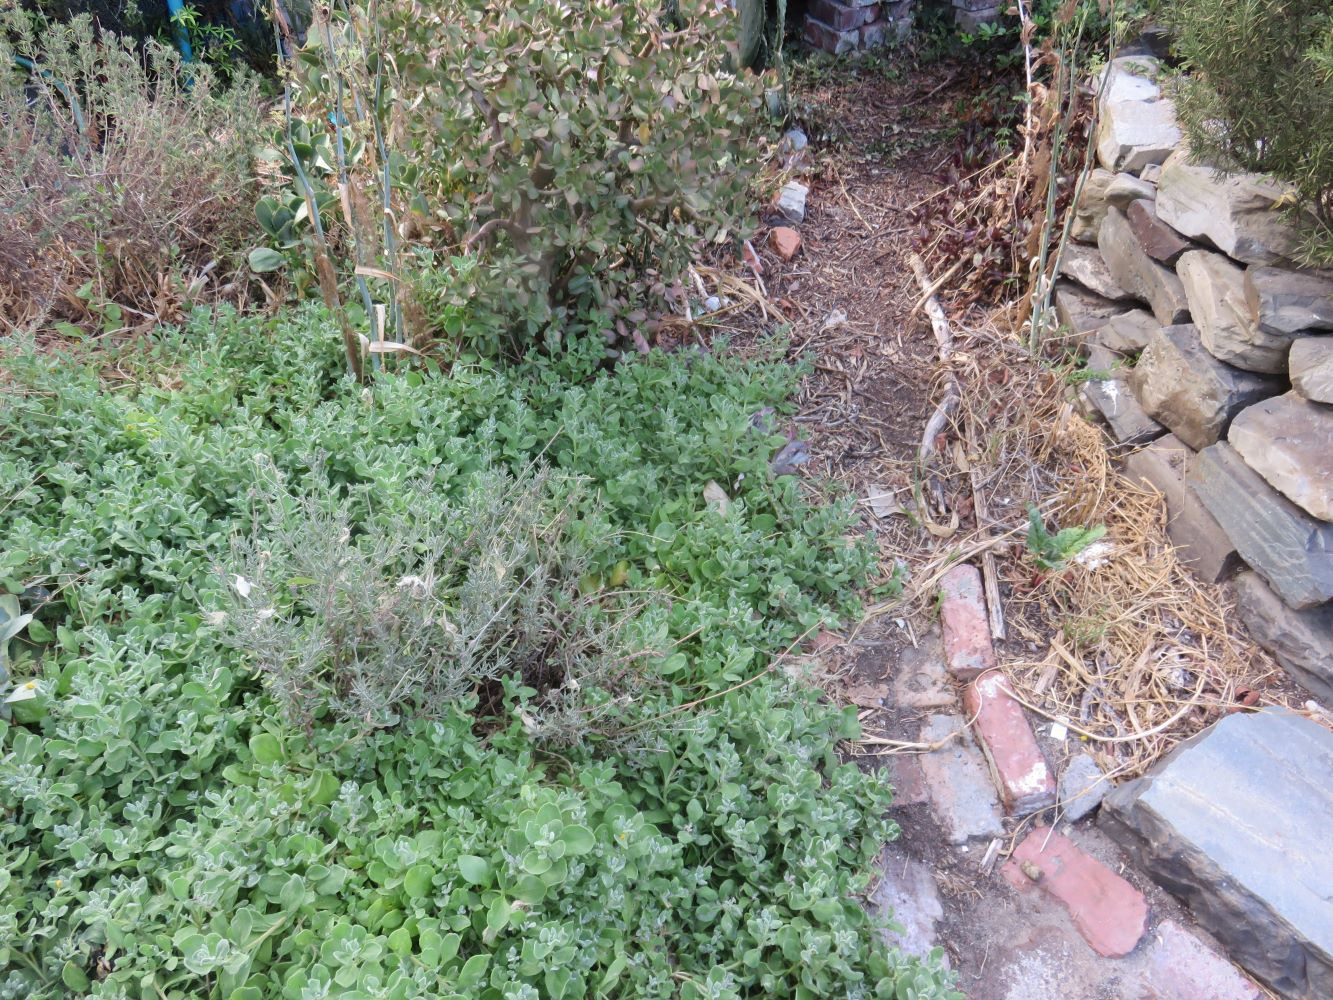 And below the wall, in the water catching hollow of the garden, I planted hardy native plants instead of the more tender European ones.